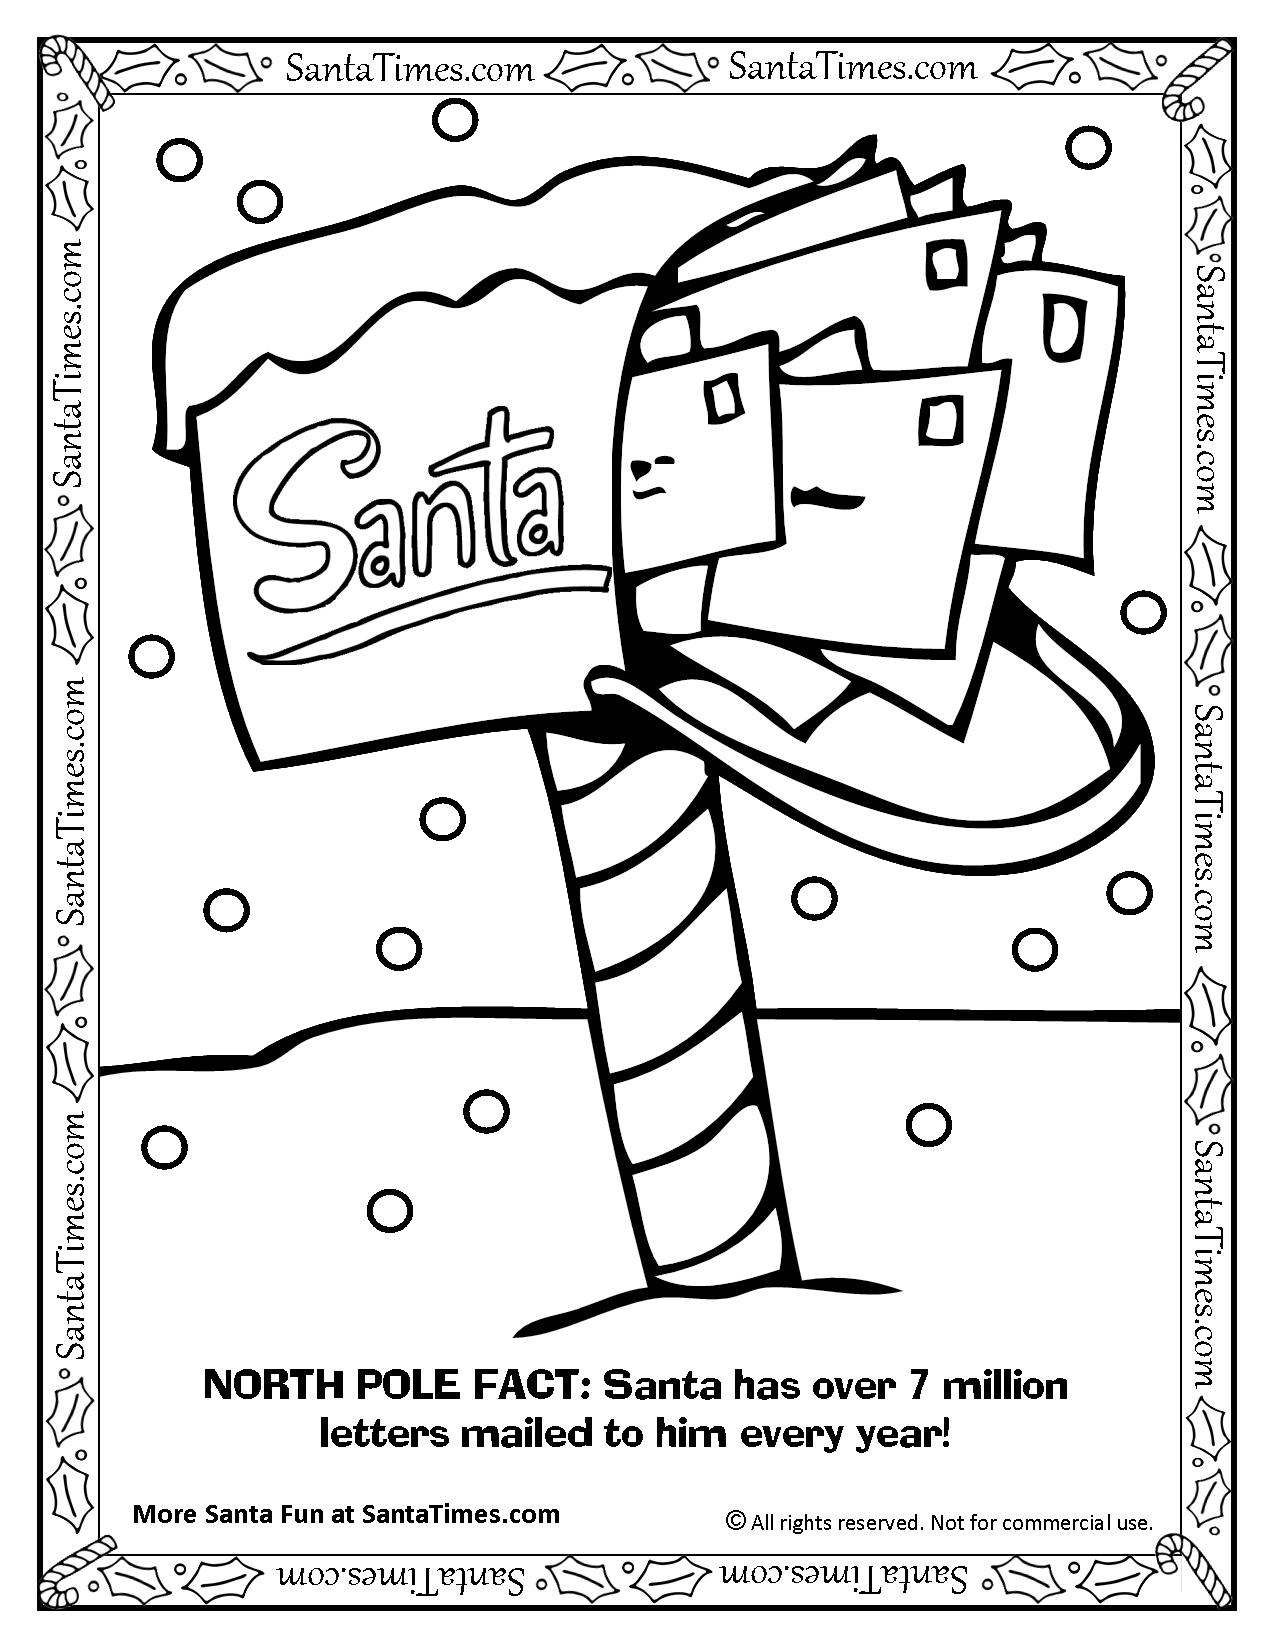 Santa S North Pole Mailbox Coloring Page Printout More